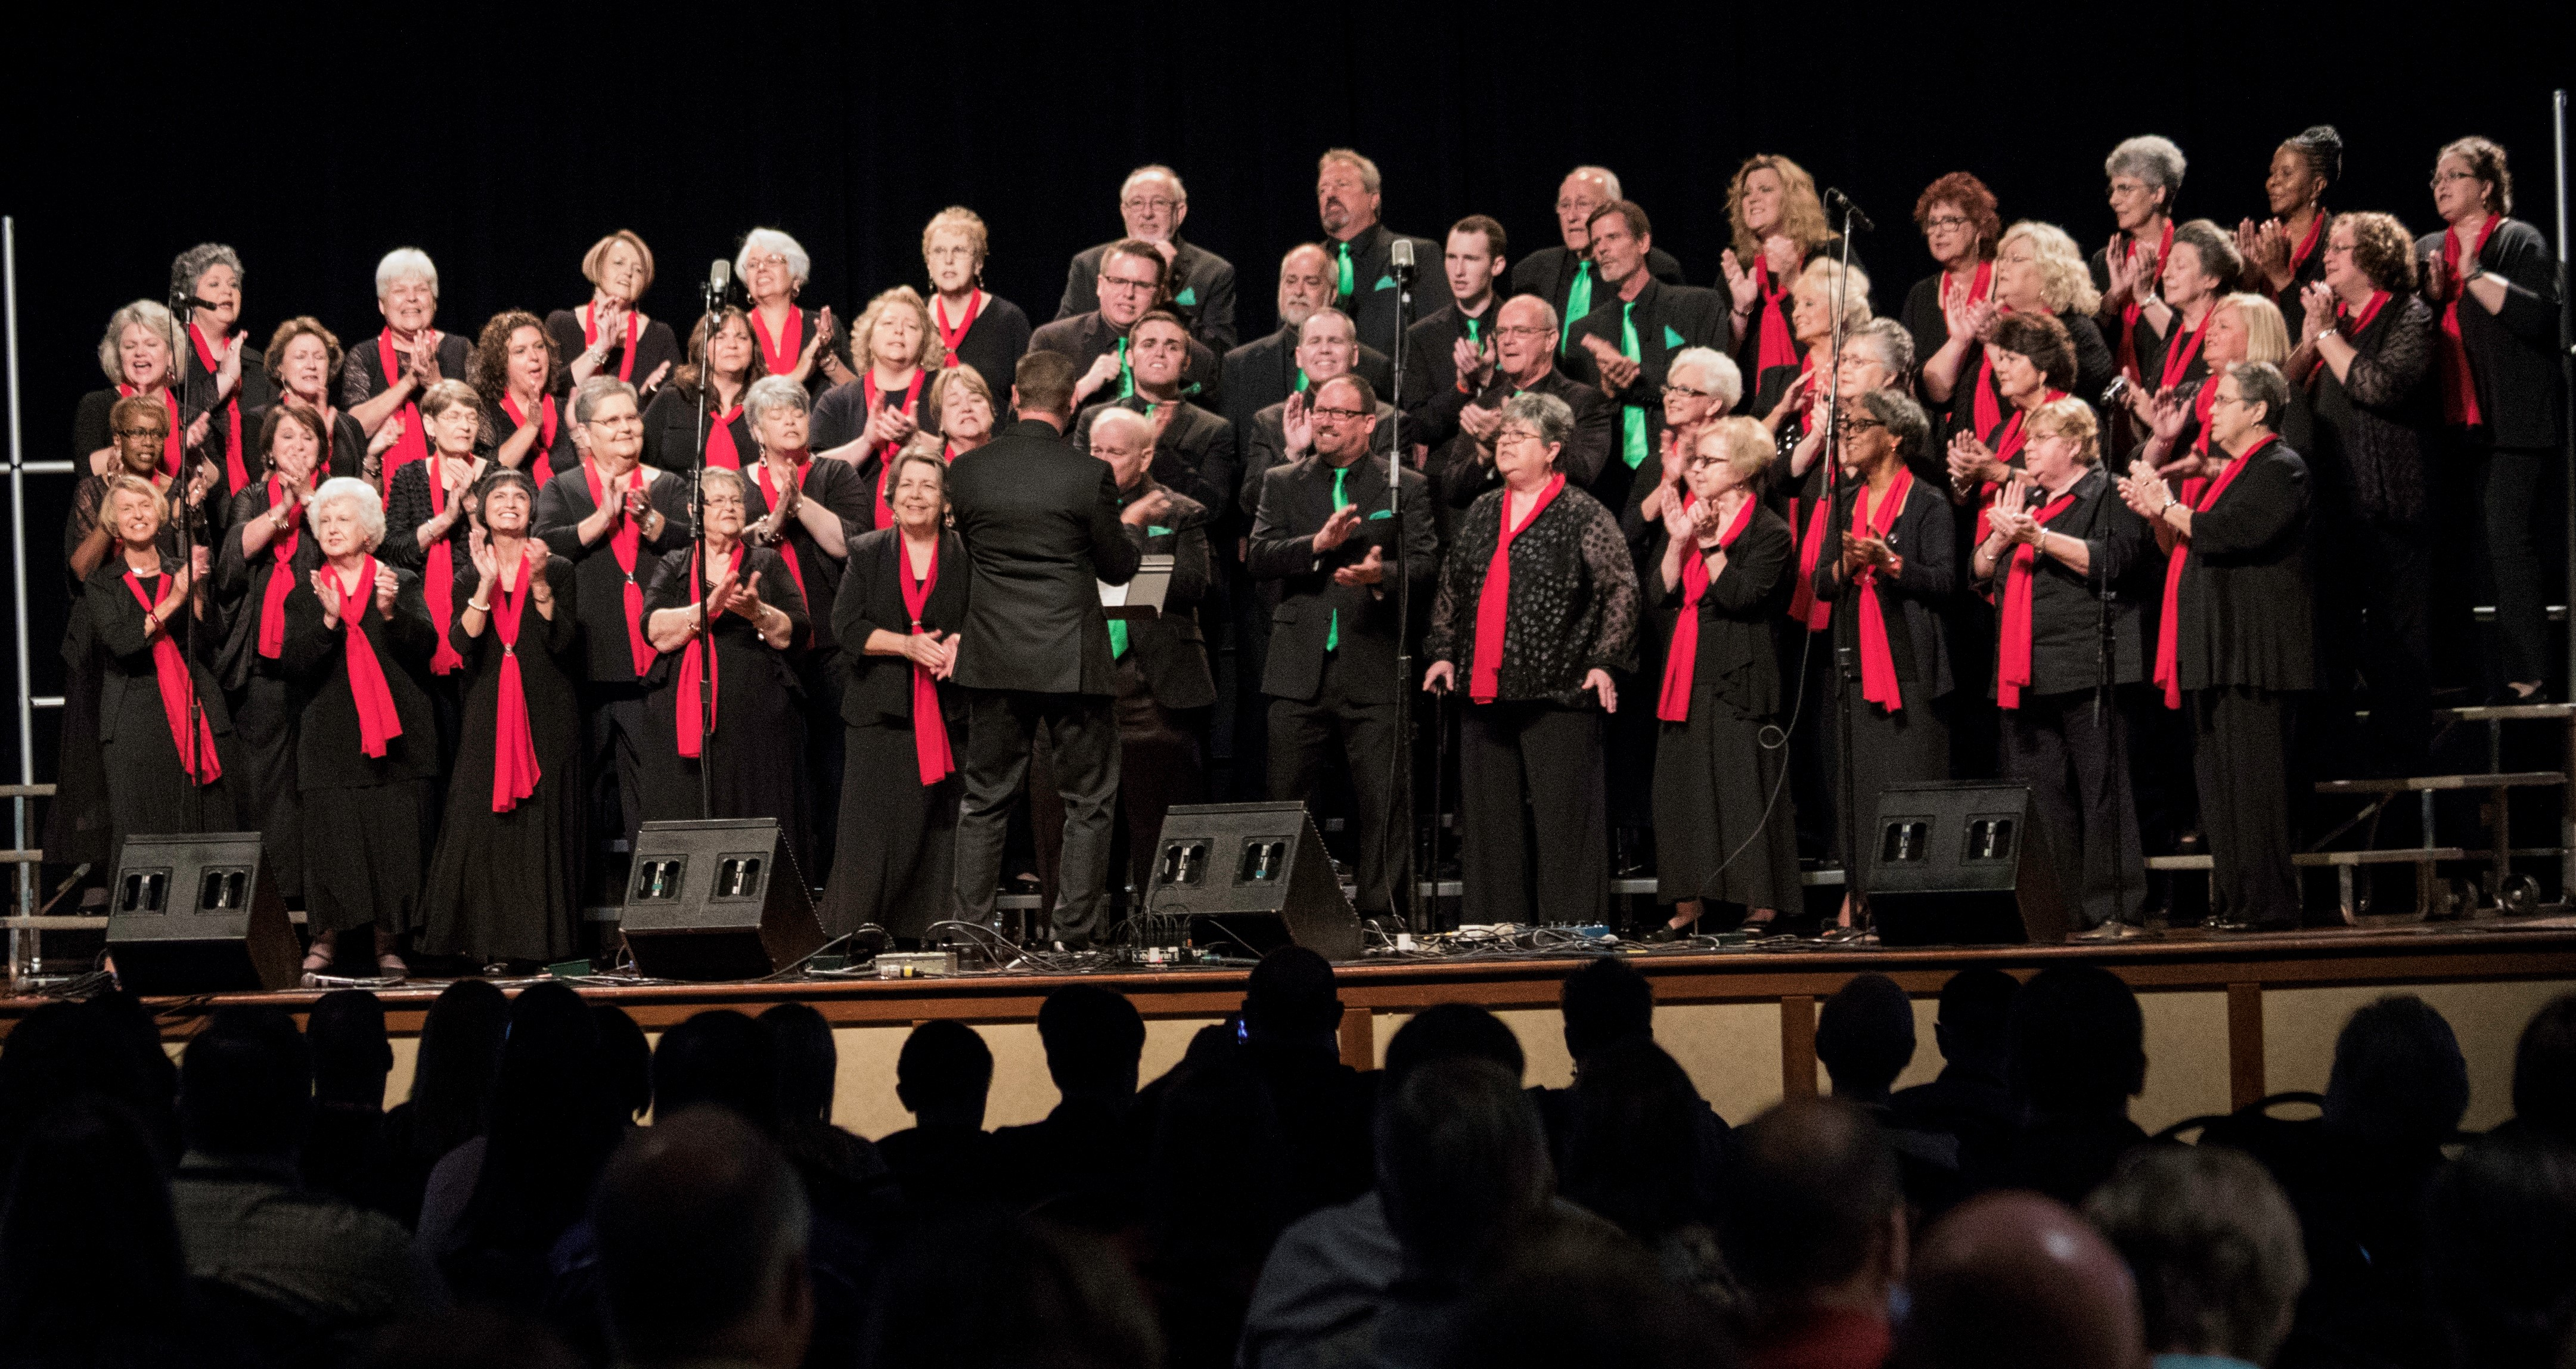 Wilmington Celebration Choir Presents World-Premiere of Tim Lovelace's Christmas Musical Miracle In A Manger at LifeWay's Worship Life 2017